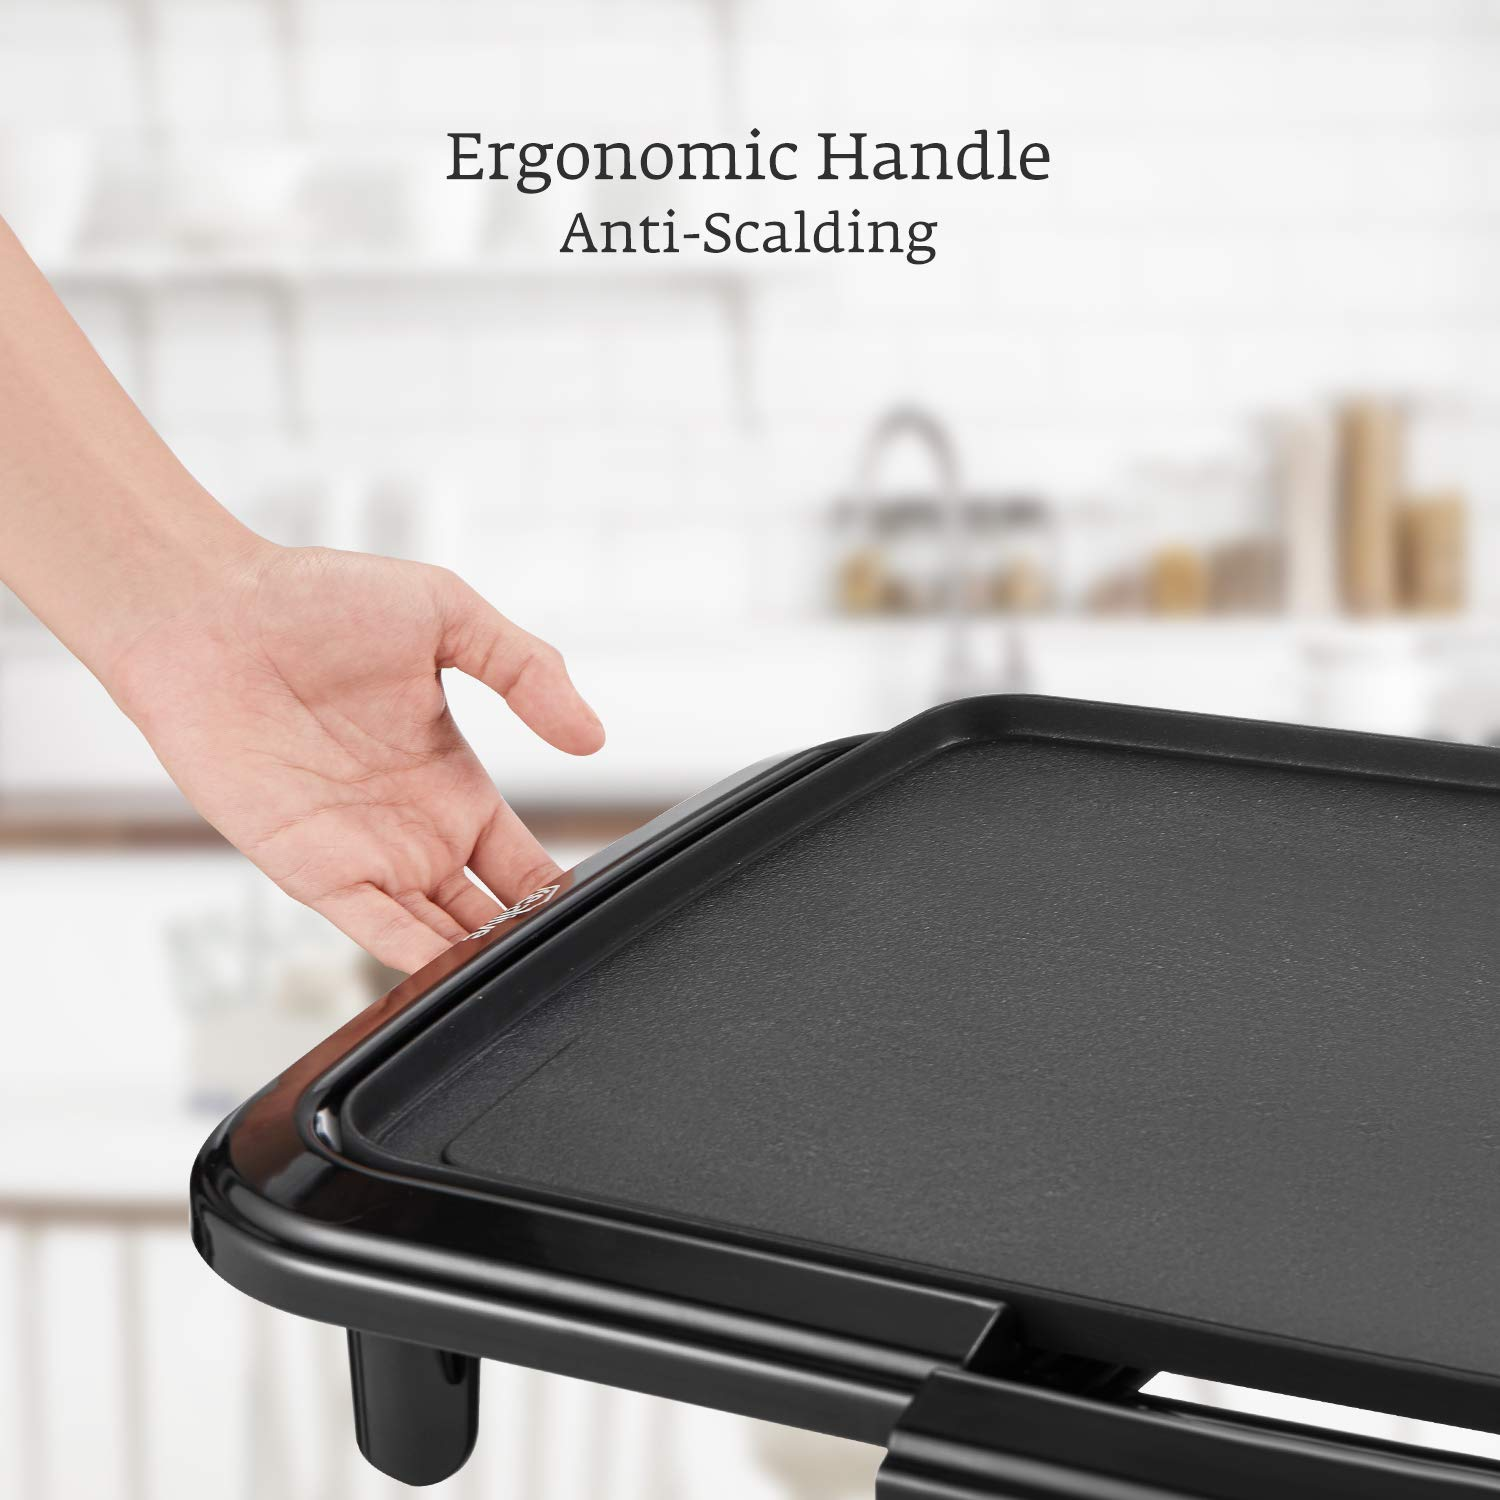 Kealive Griddle, Family-Sized Electric Grill Griddle 1500W with Drip Tray, Non-stick, 10''x20'', Black by Kealive (Image #4)